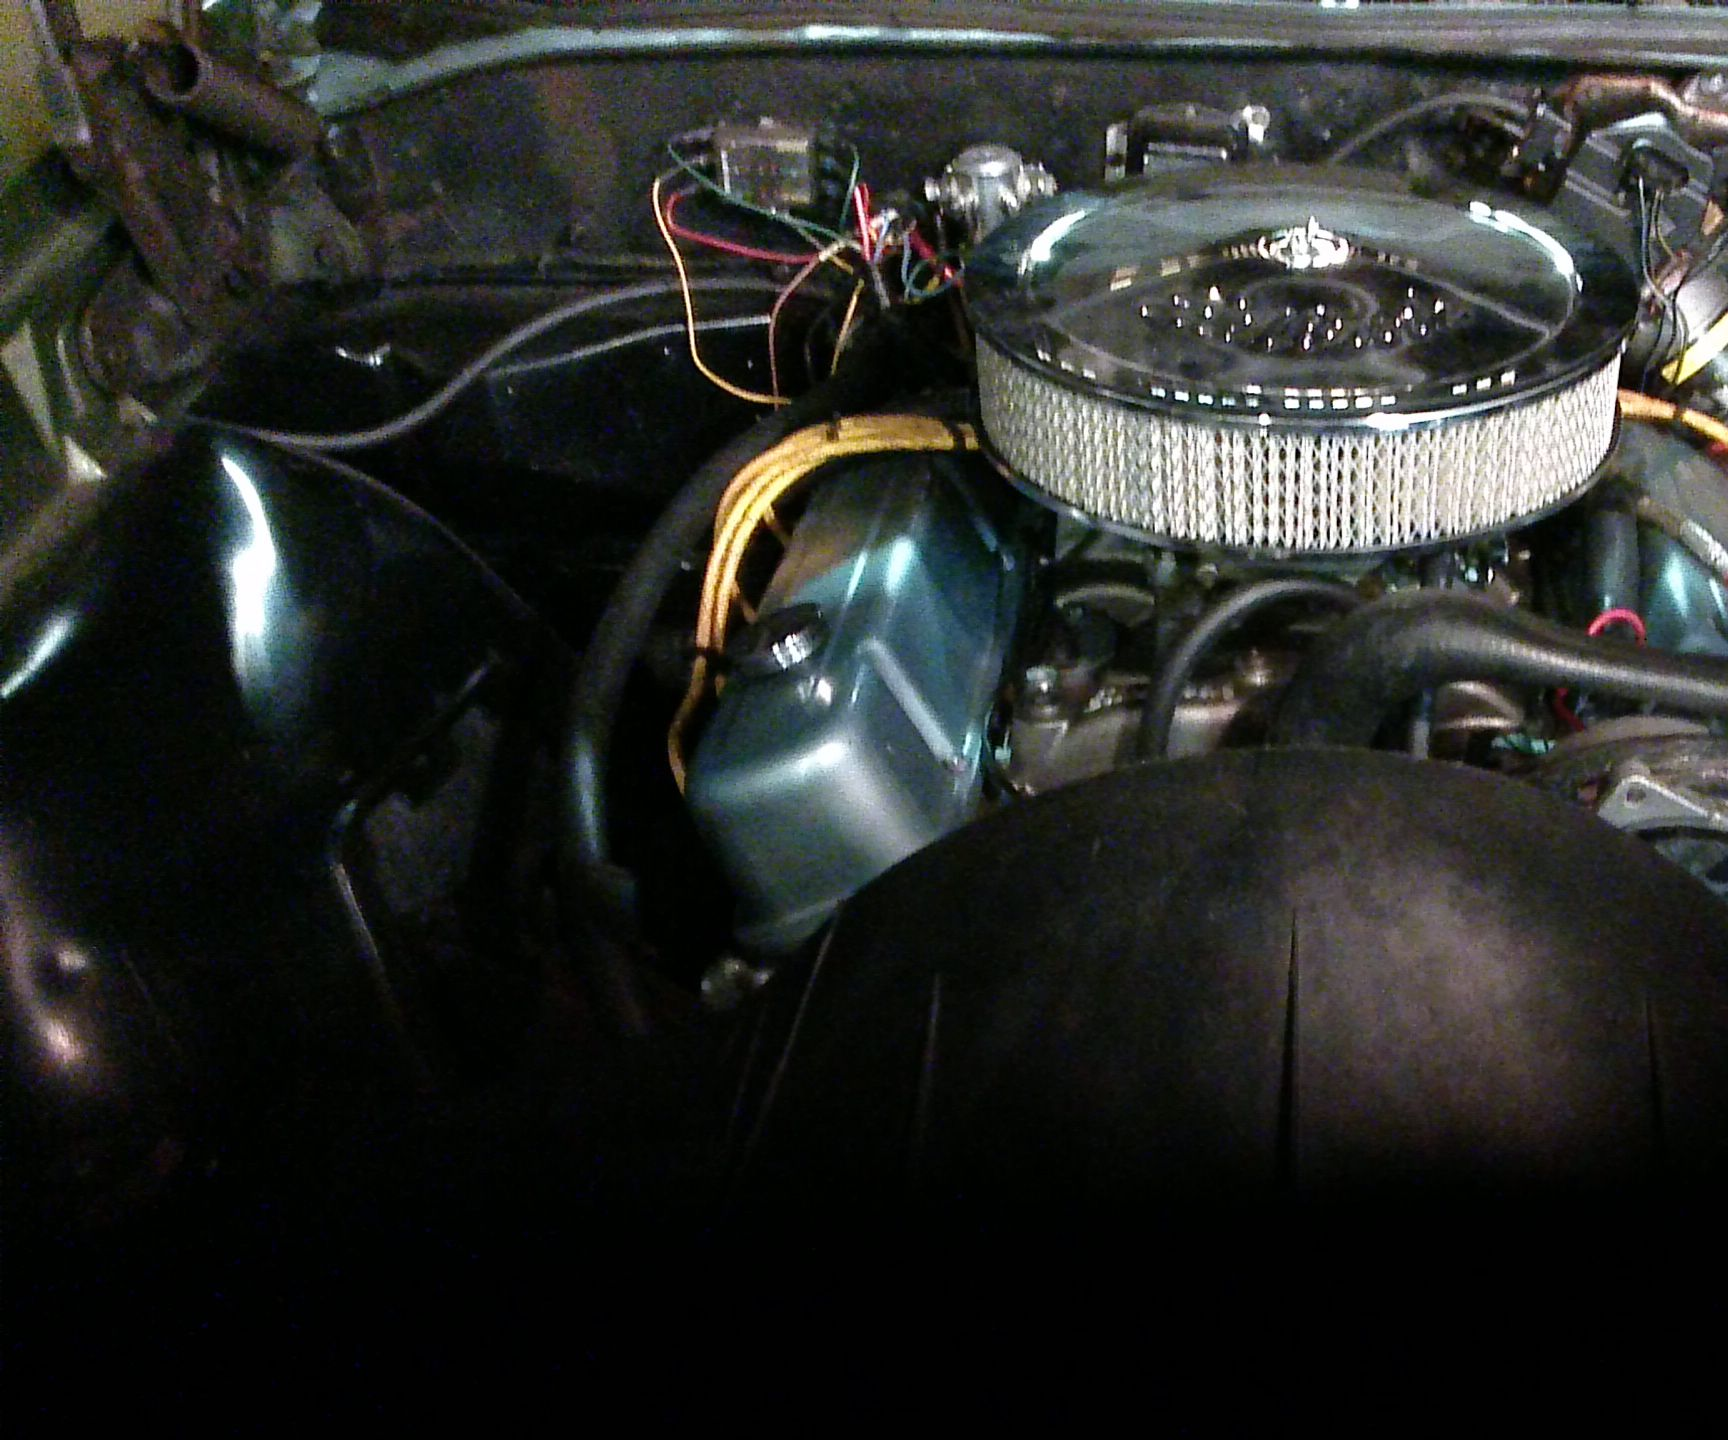 Make a Tool From an Old Distributor Cap to Locate Top Dead Center (TDC) on the Compression Stroke for Every Cylinder